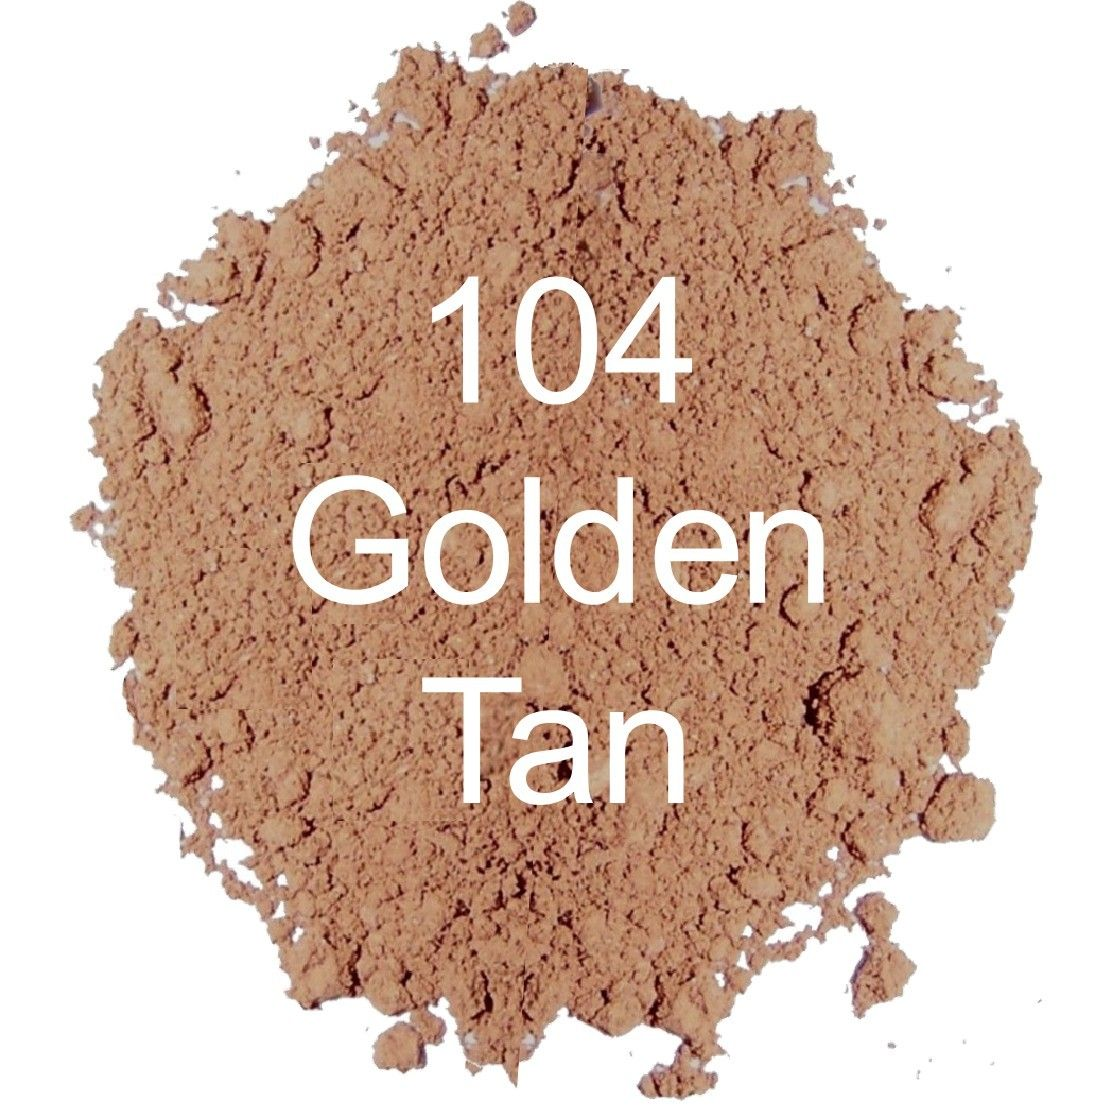 104 golden tan for lightly tanned skin by sun or tanning bed with